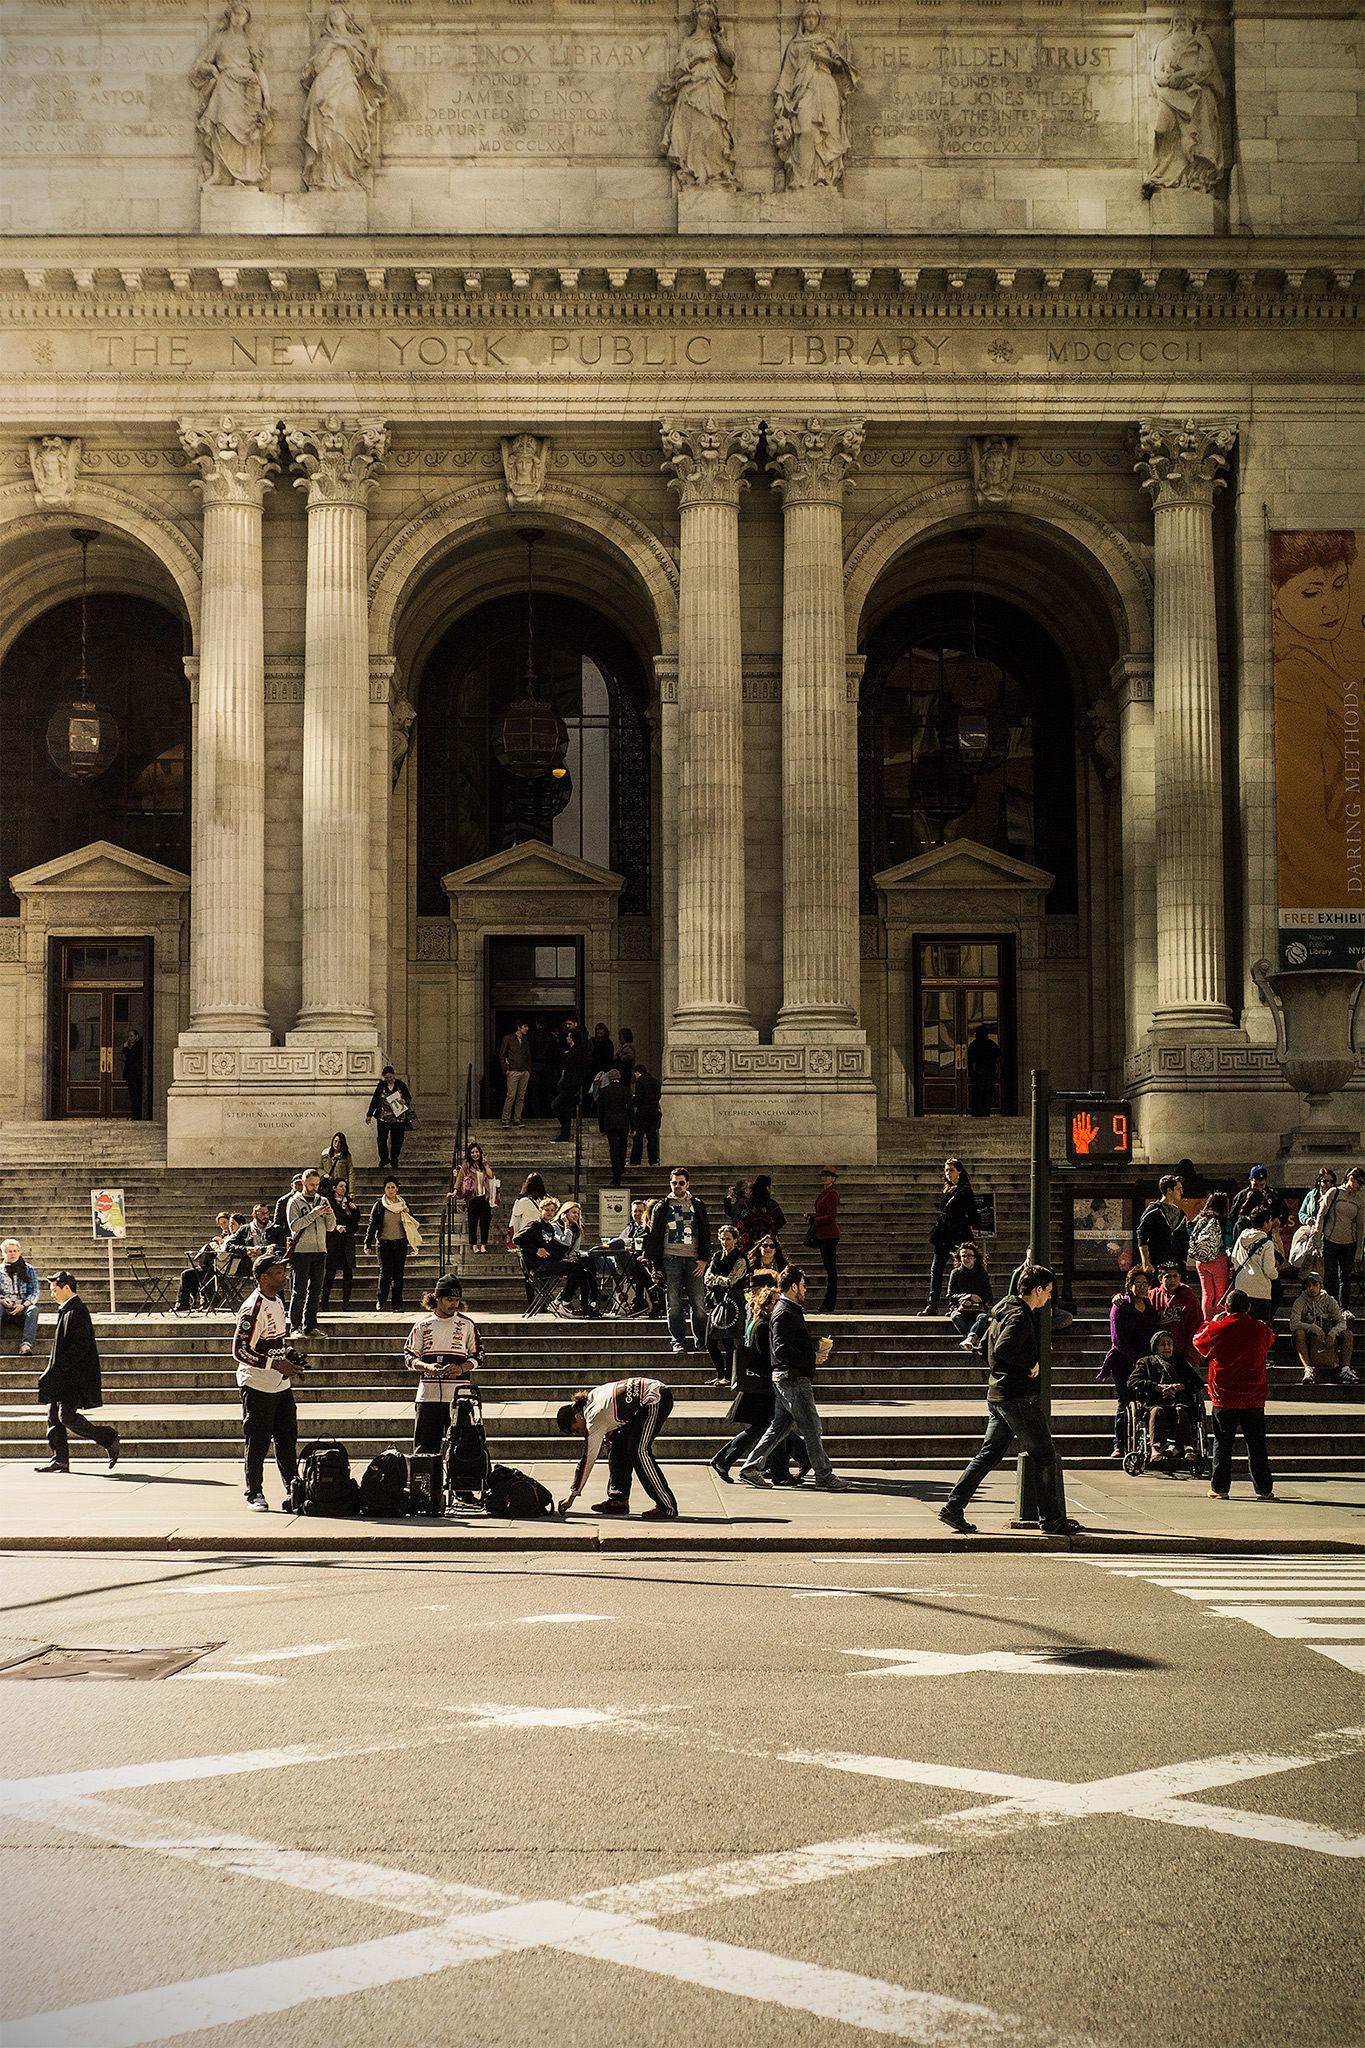 New York Public Library, new york city